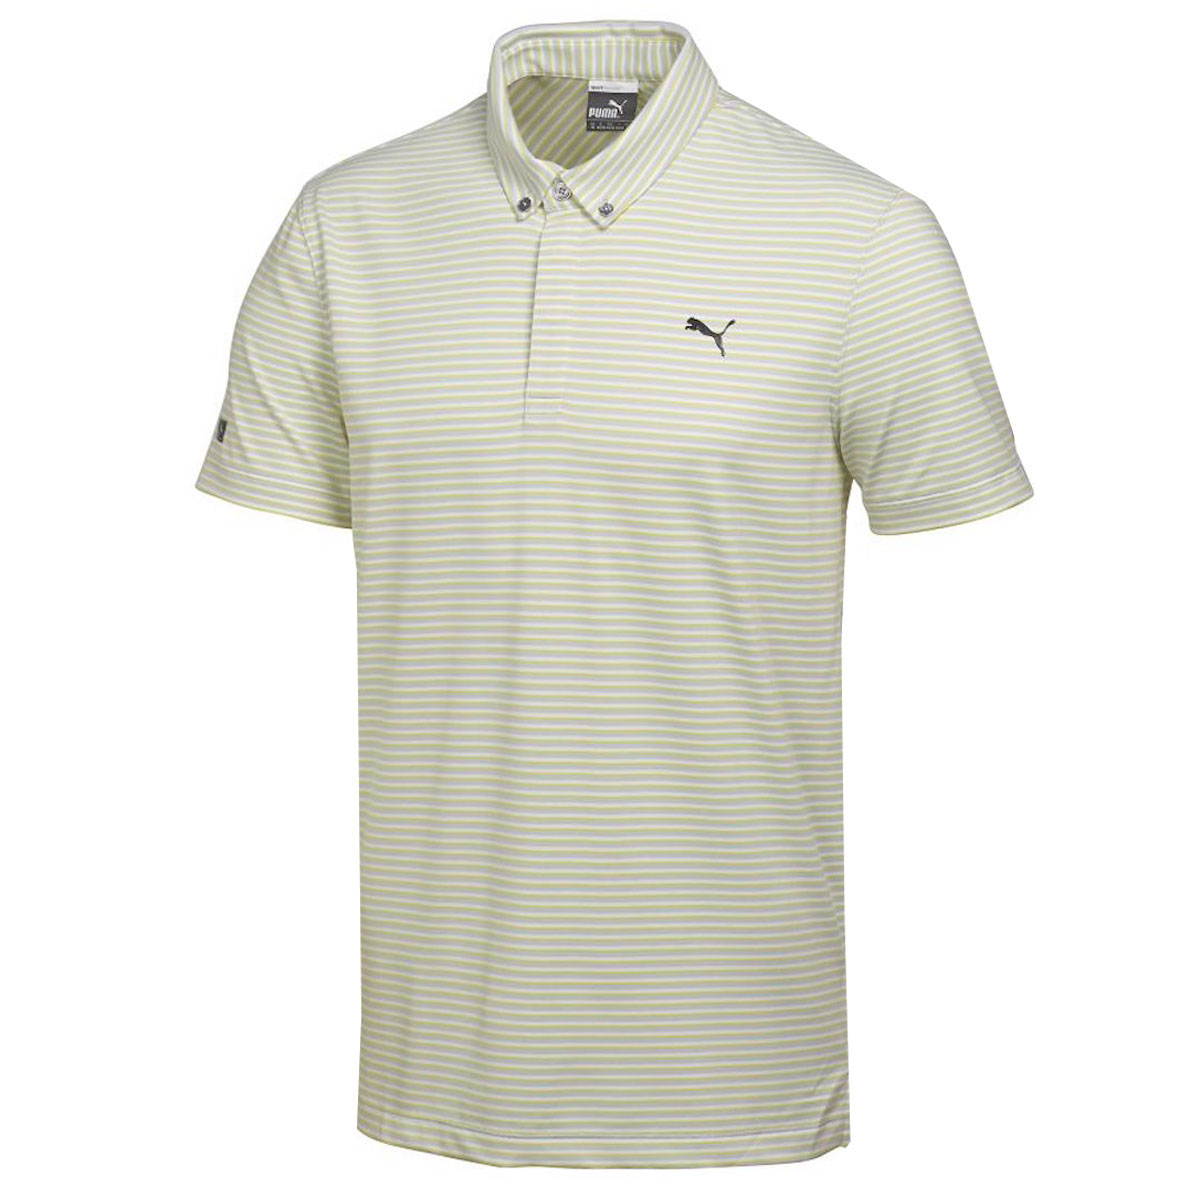 Puma golf mens lux yd stripe polo shirt ebay for Mens puma golf shirts